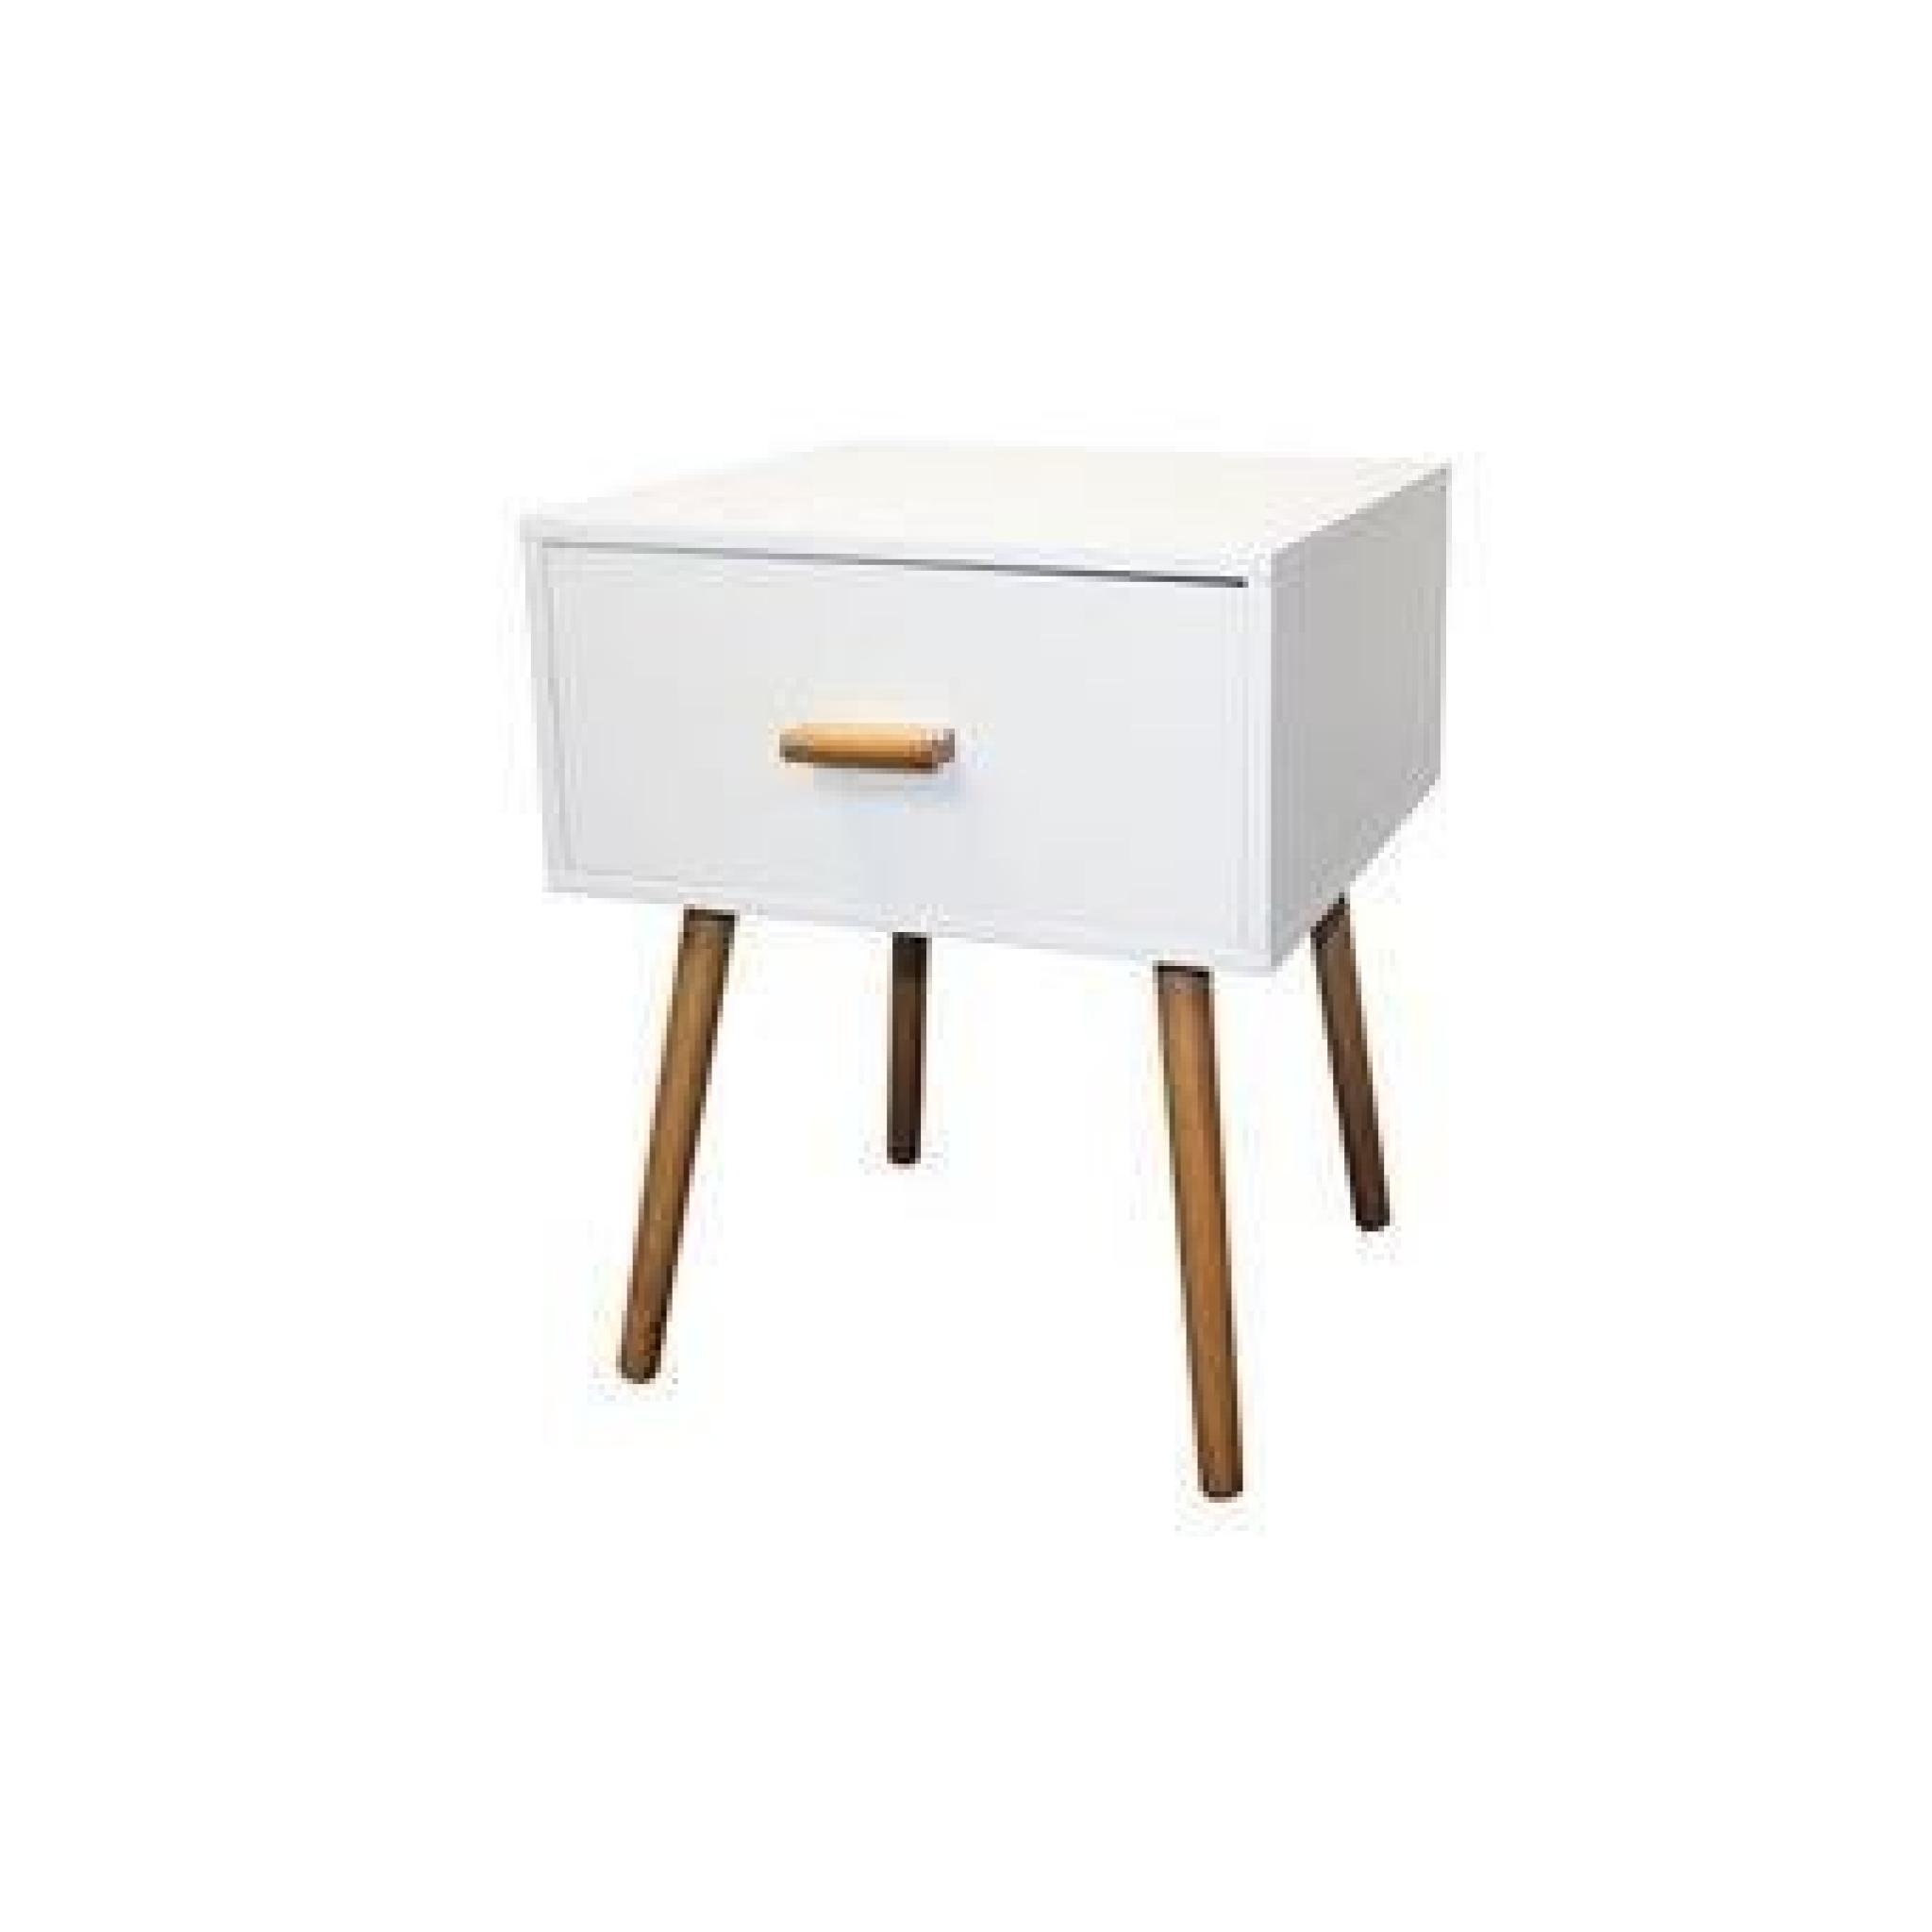 Table de chevet blanc design scandinave achat vente for Table scandinave pas cher